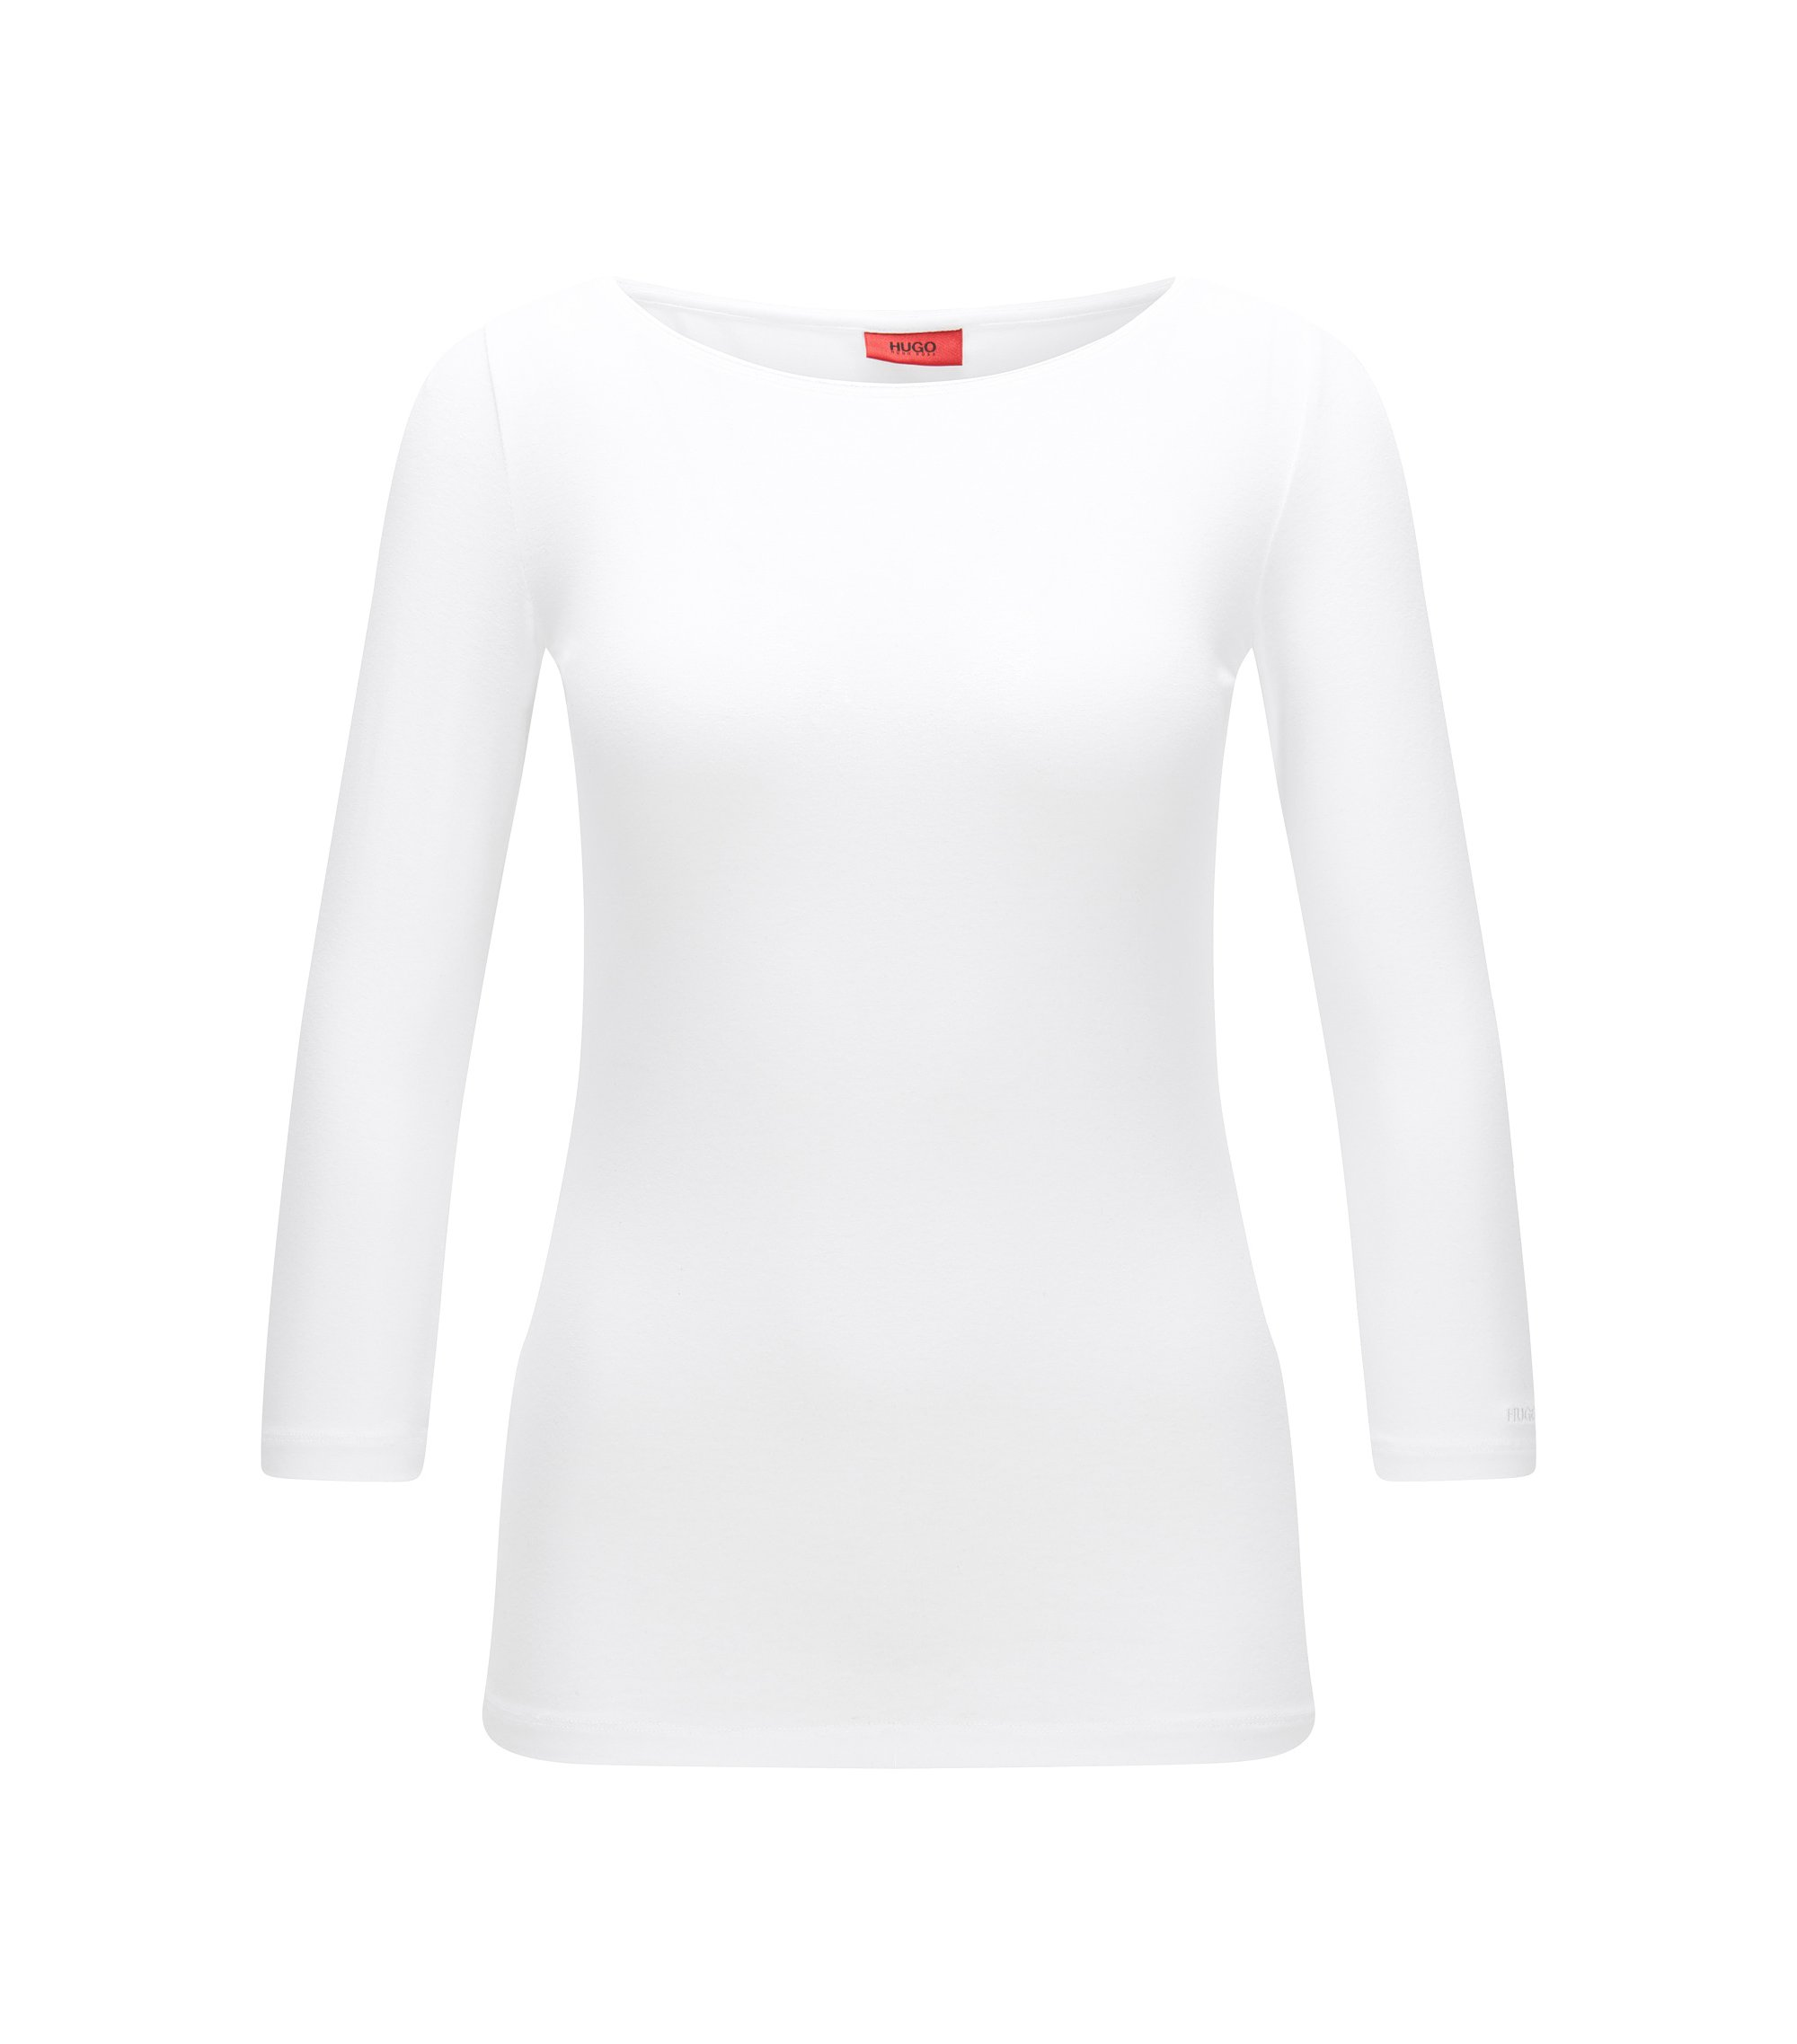 T-shirt Slim Fit en jersey simple, à encolure bateau, Blanc